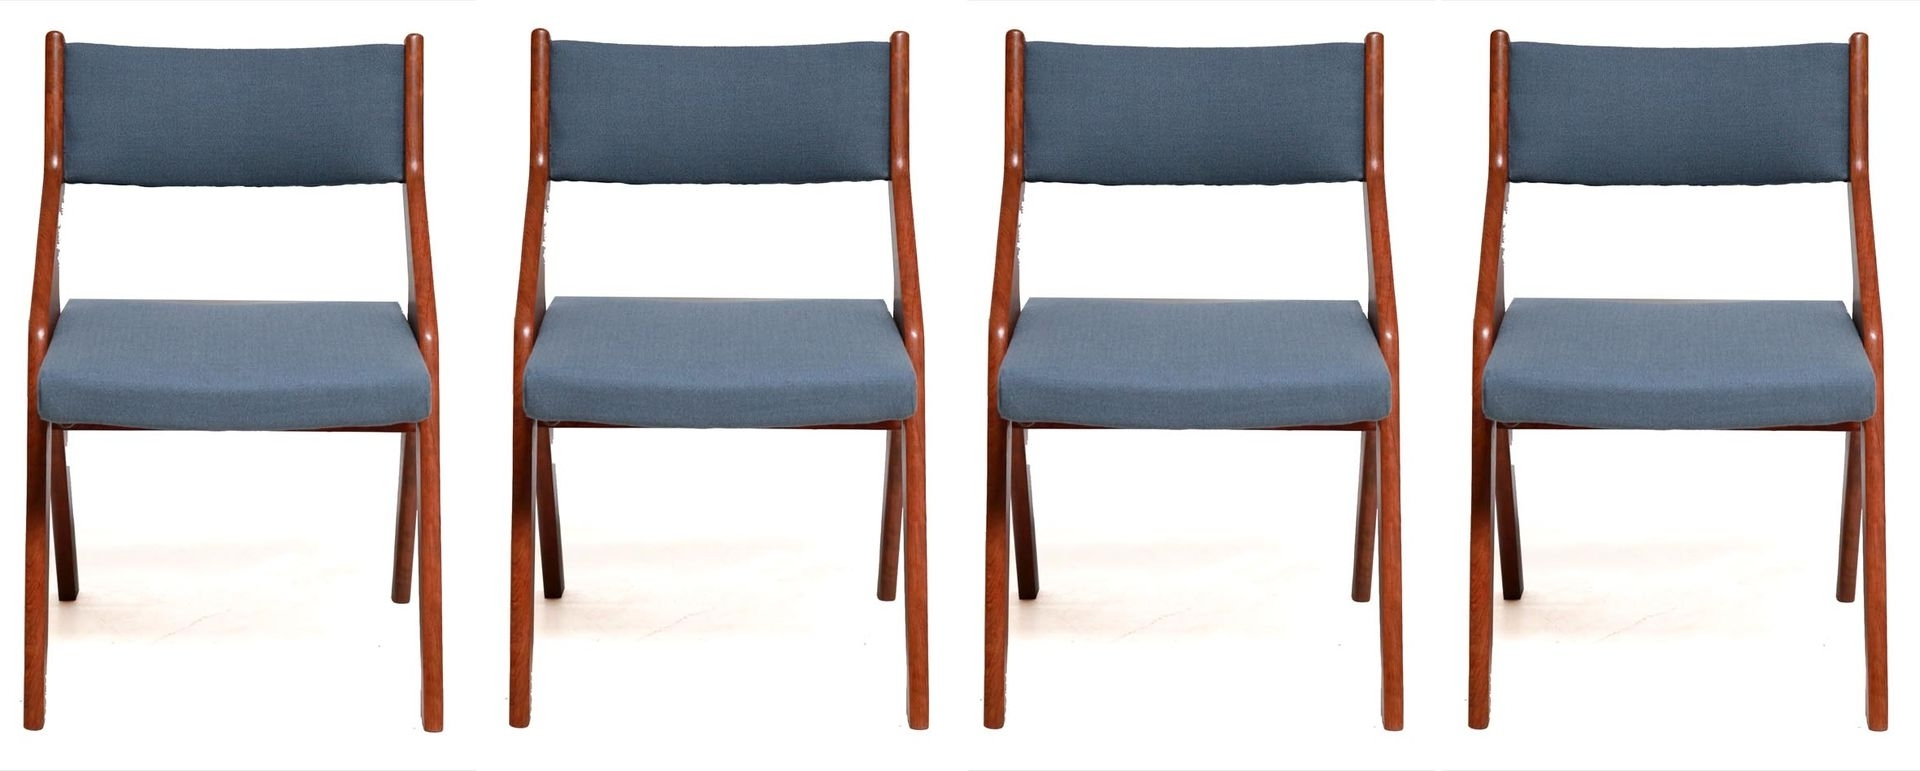 Vintage Danish Teak Wooden Dining Chairs, 1960S, Set Of 4 For Sale Within Well Liked Wooden Dining Sets (View 19 of 25)